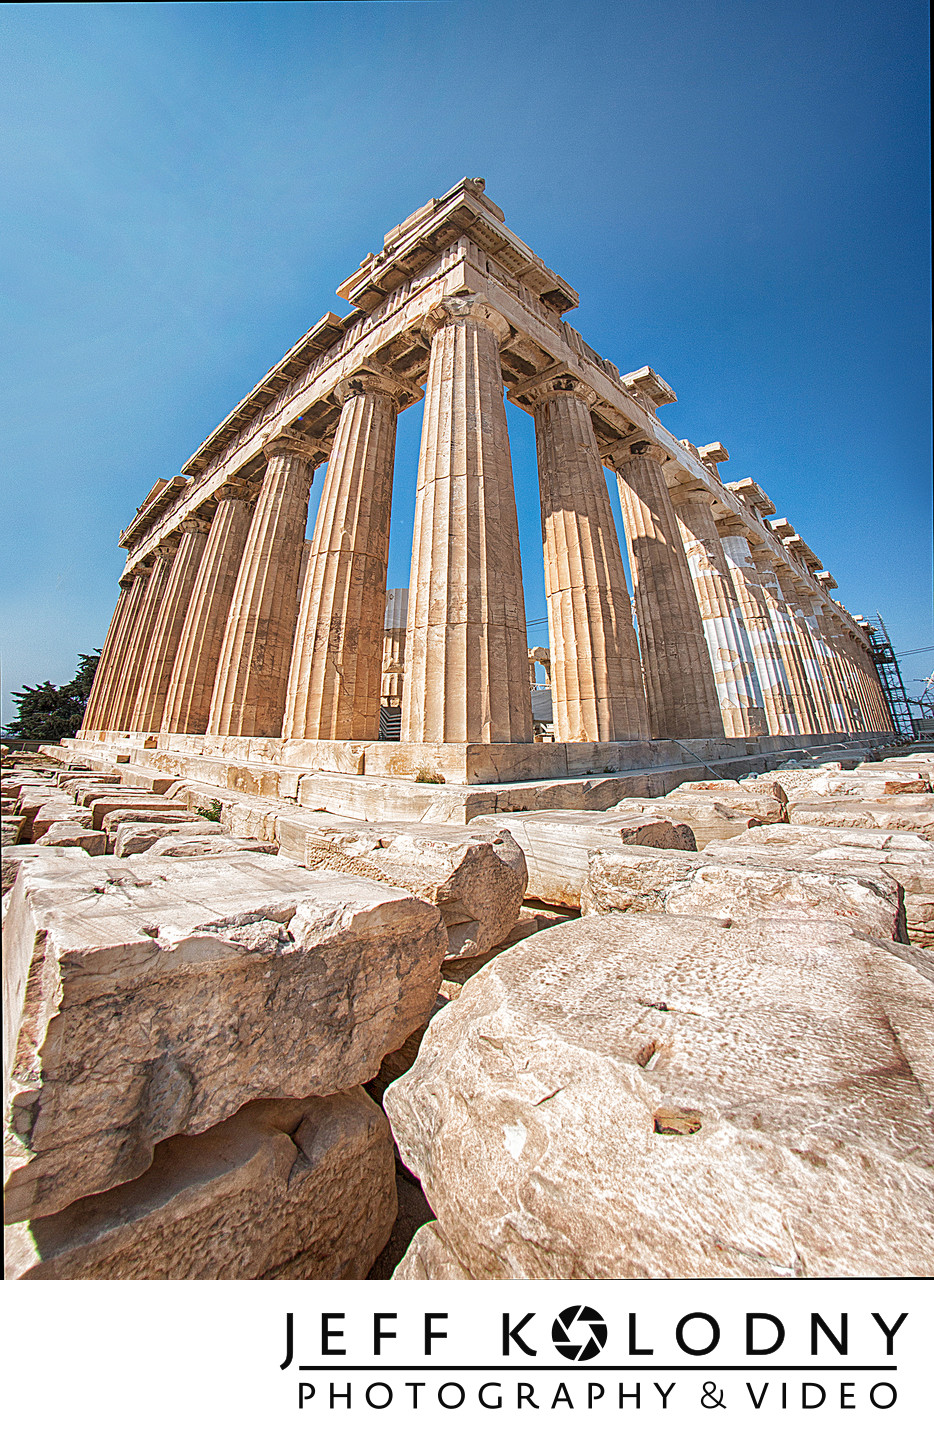 Unique angle of the Parthenon in Greece.